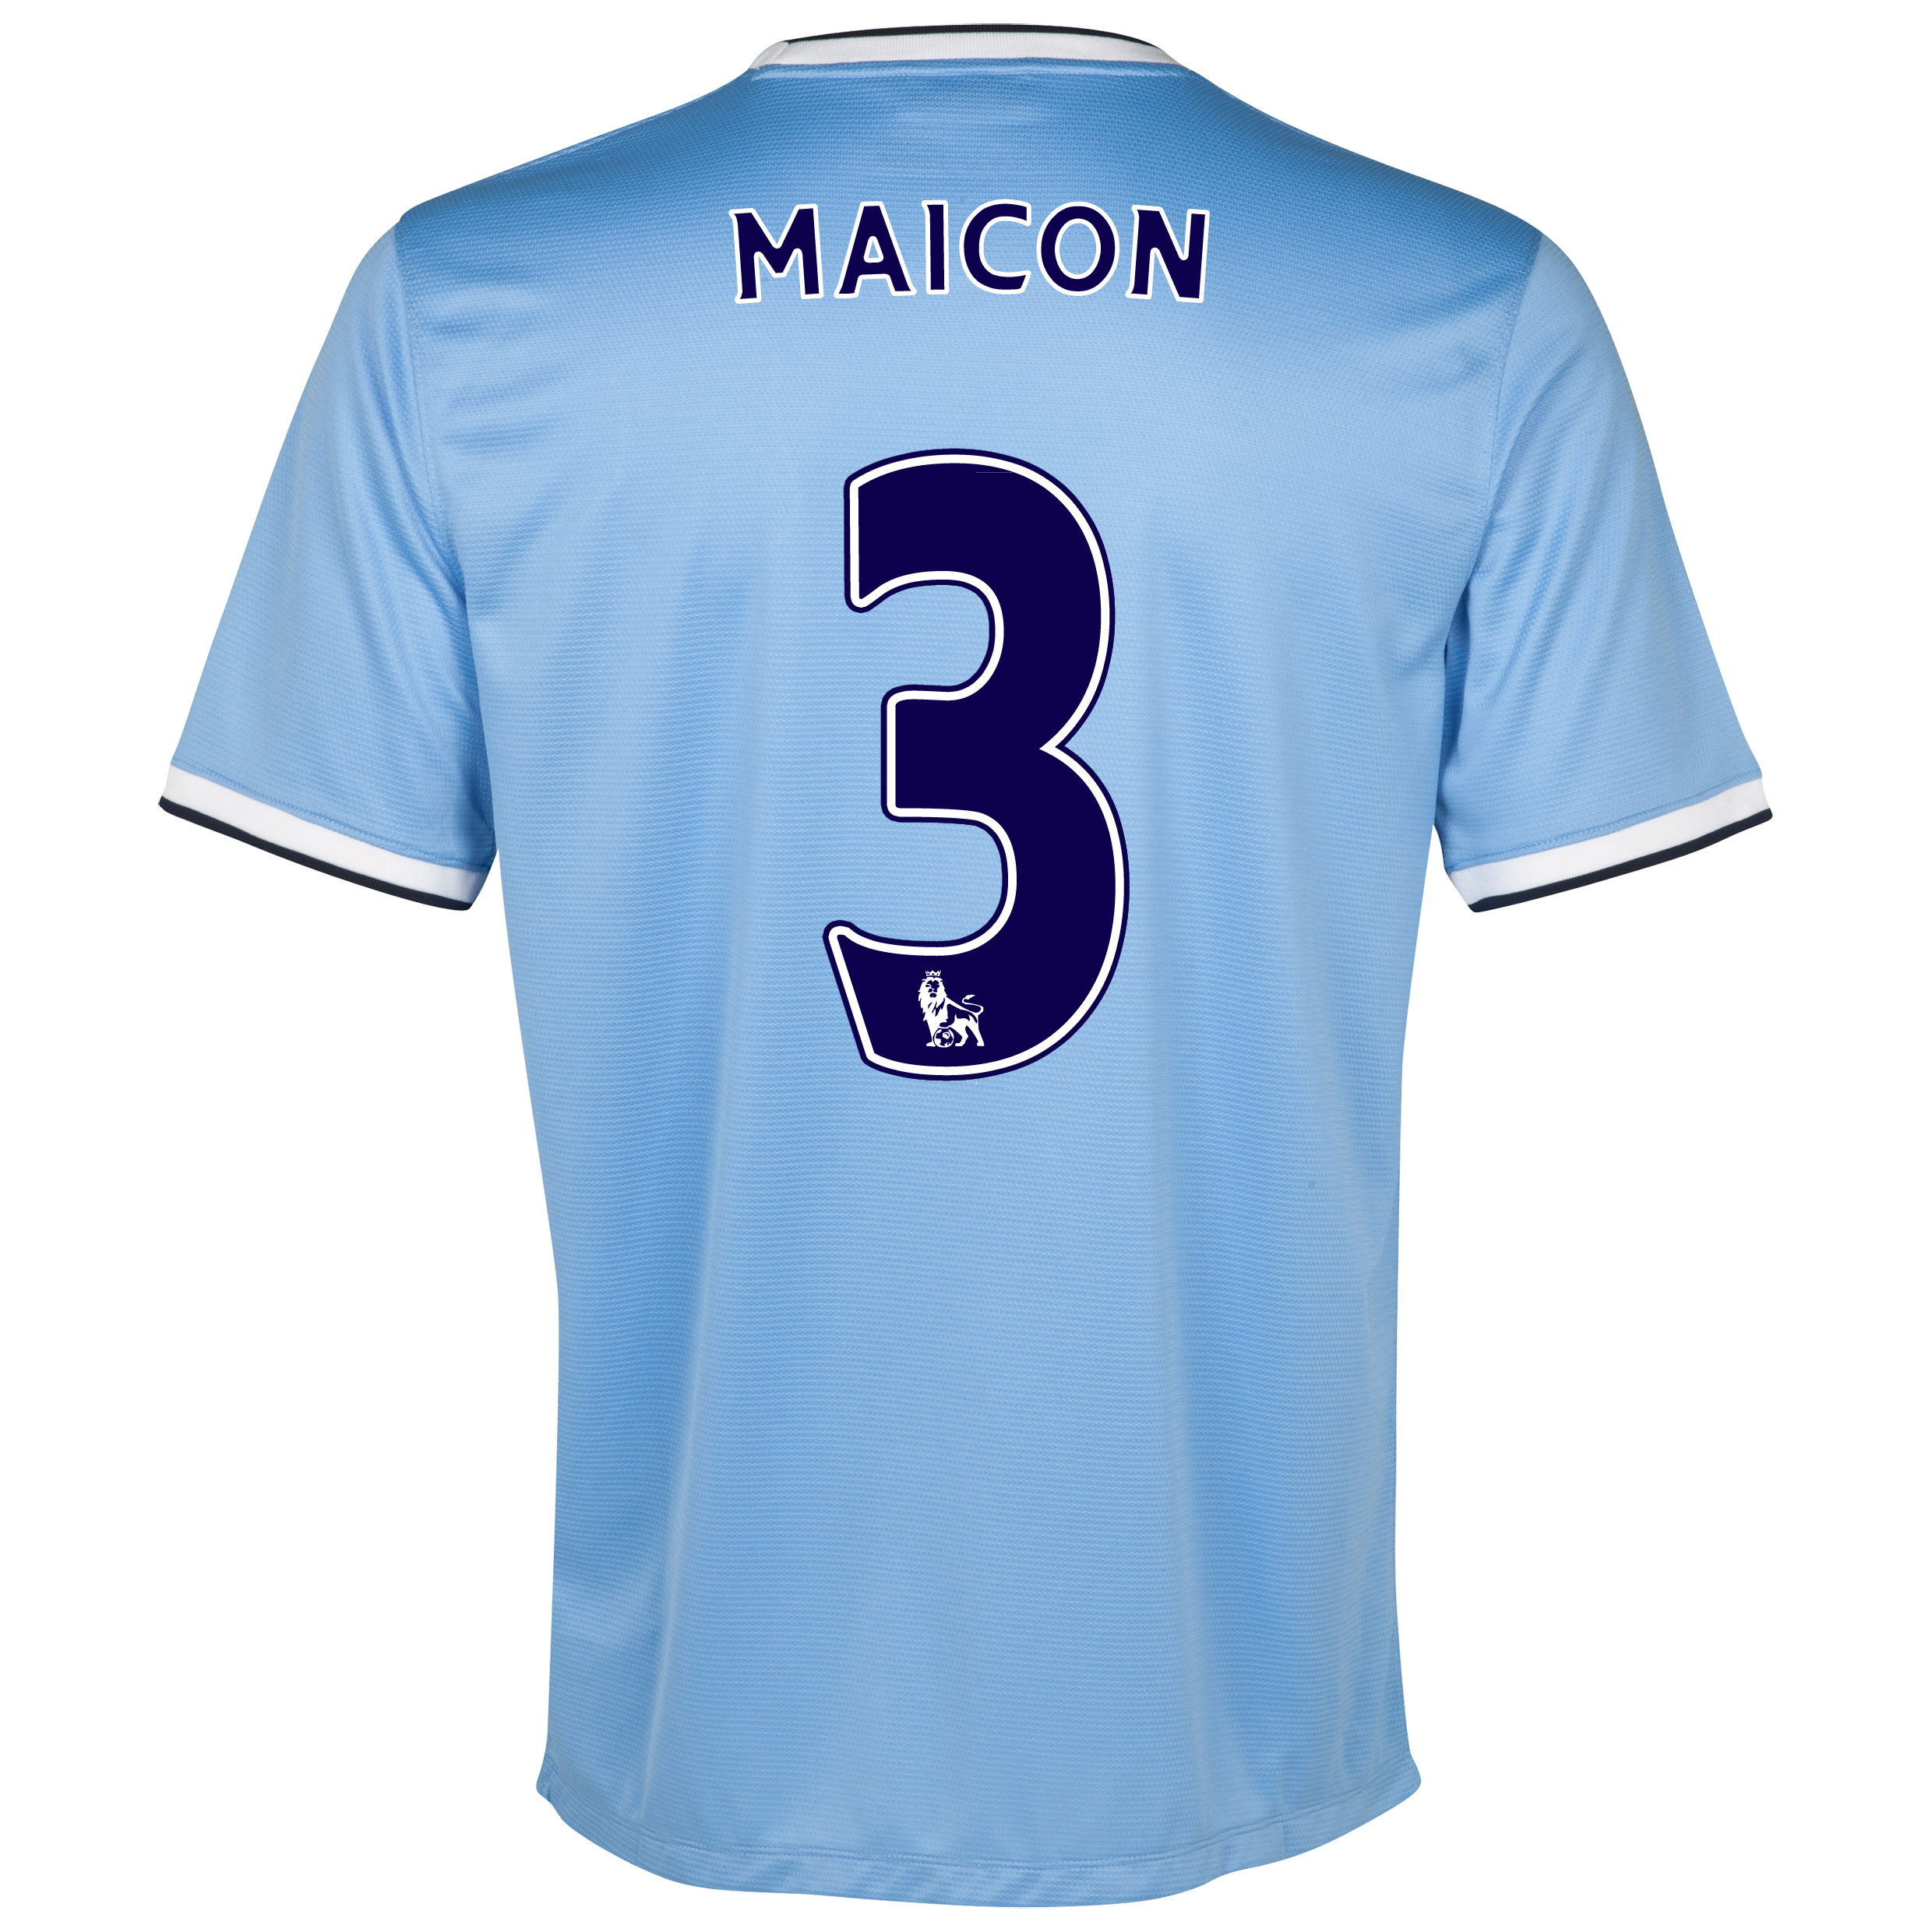 Manchester City Home Shirt 2013/14 - Junior with Maicon 3 printing